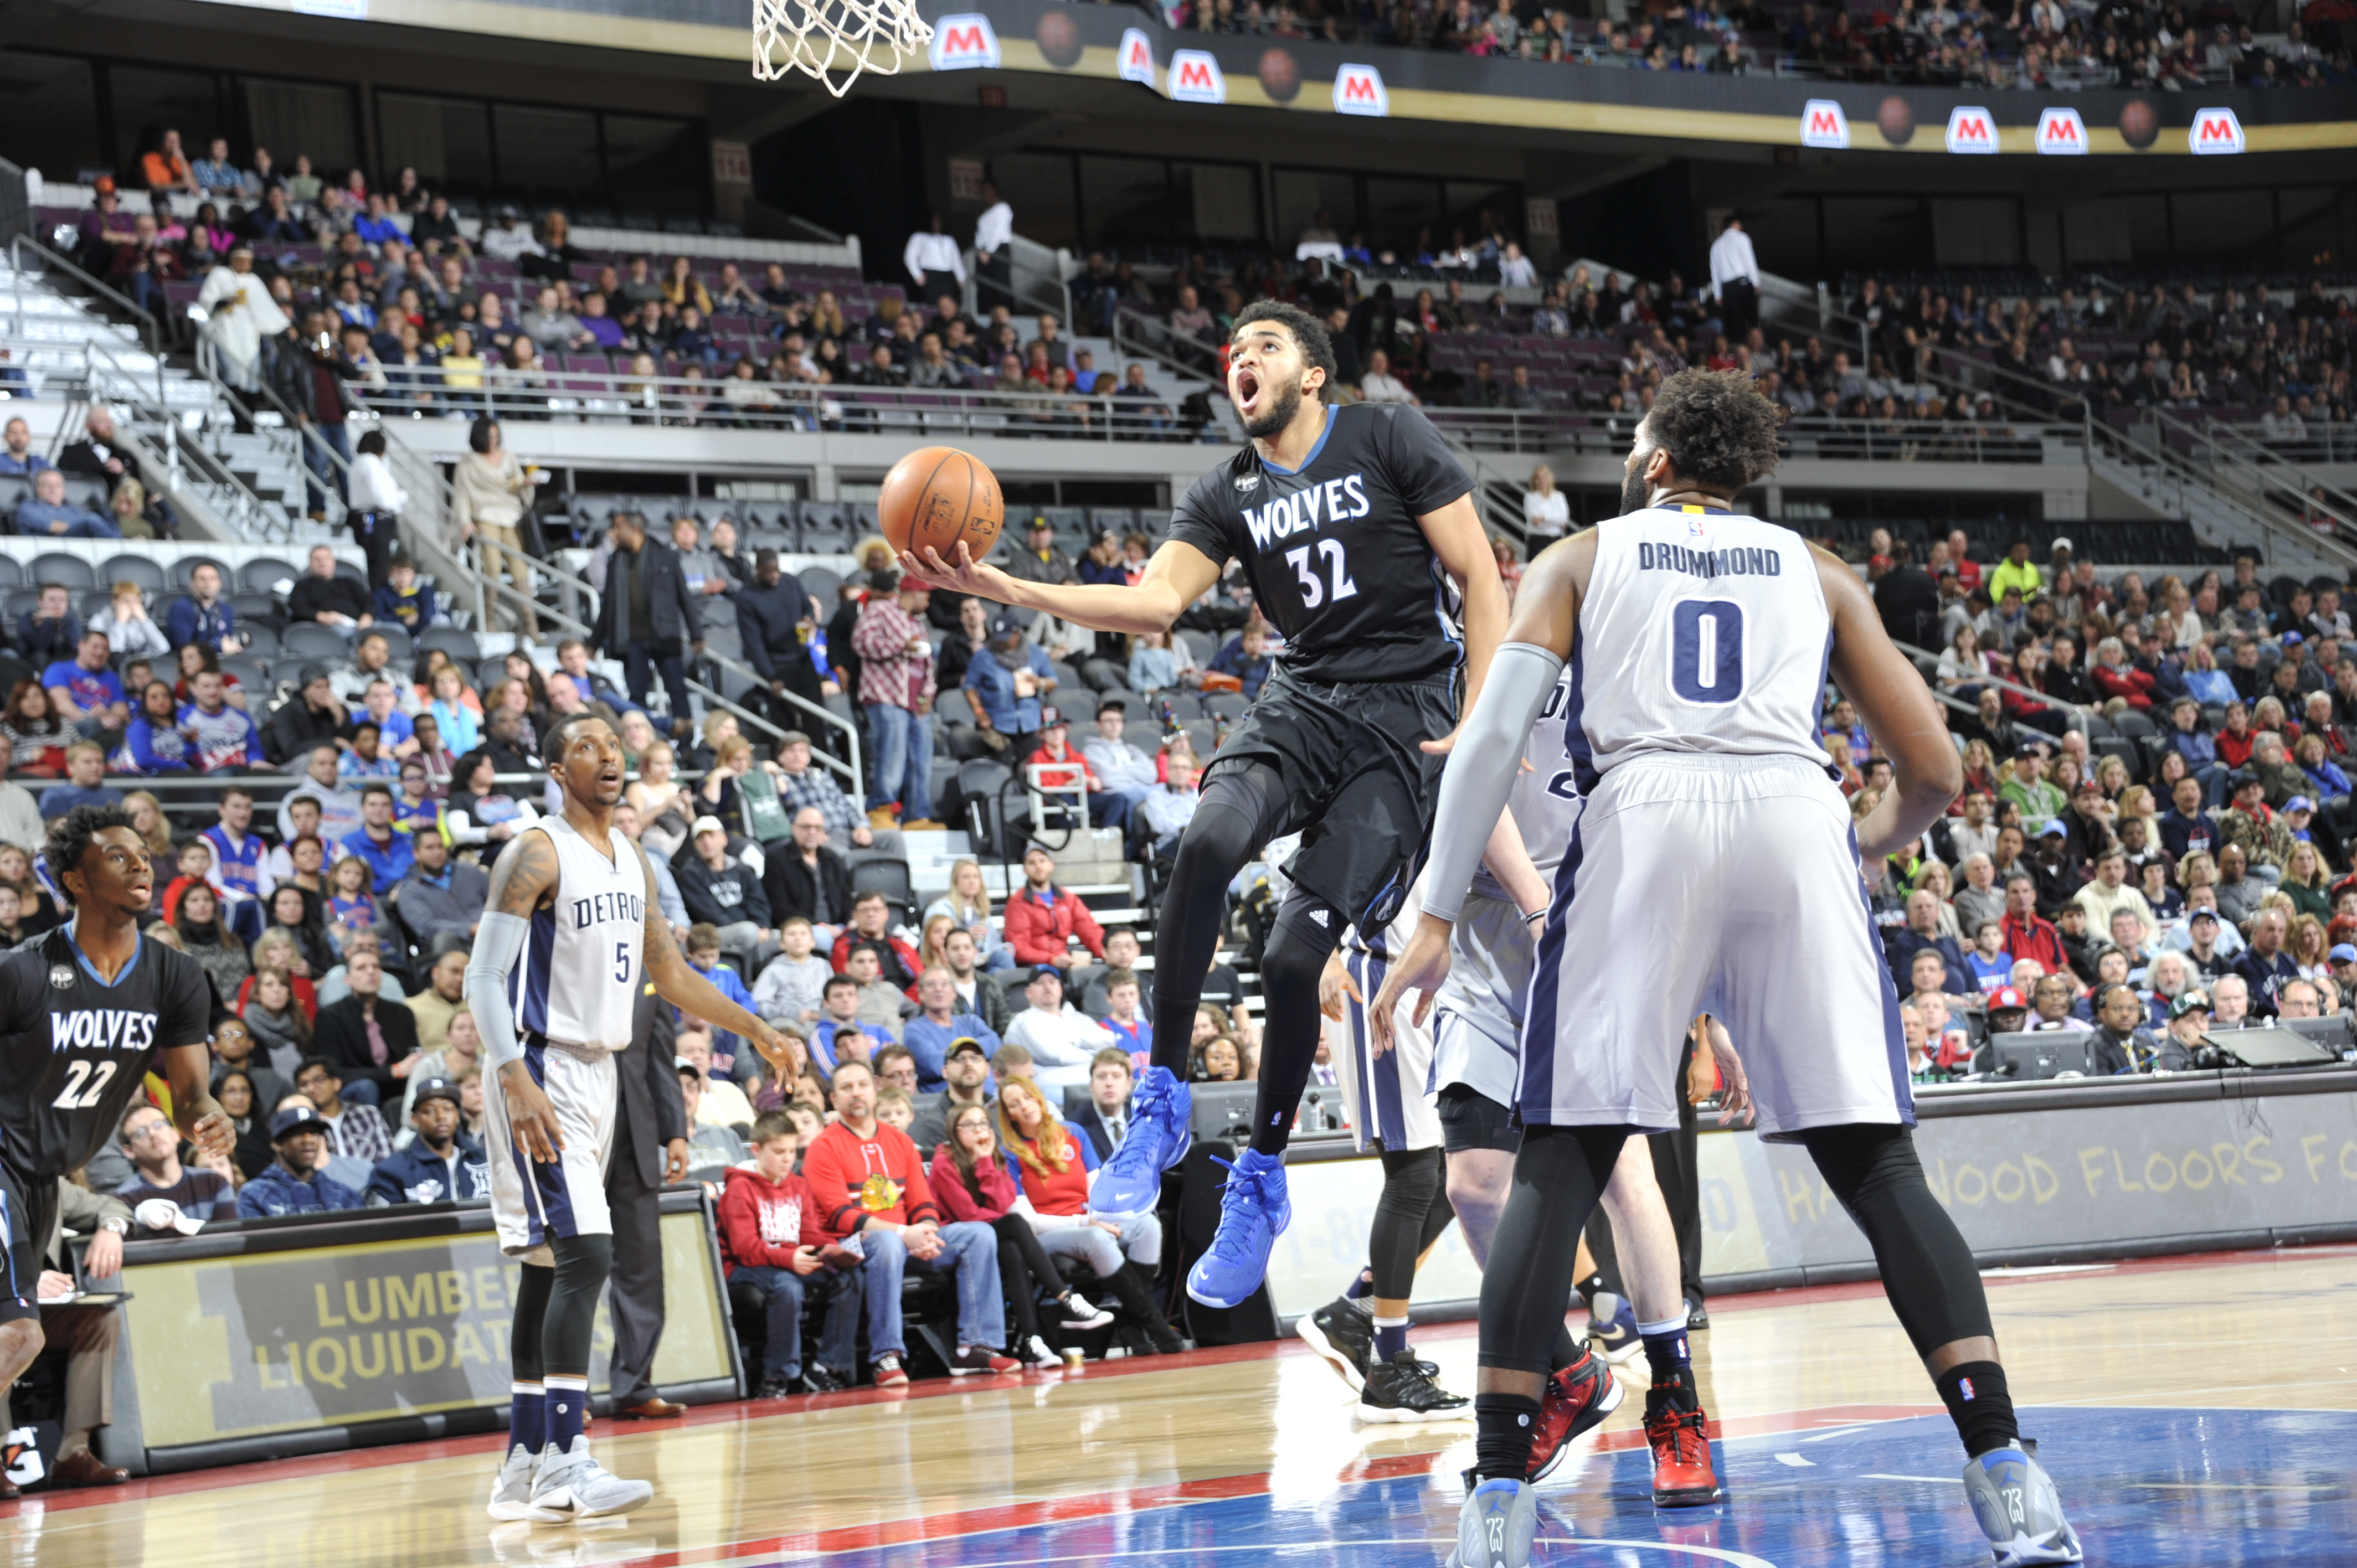 AUBURN HILLS, MI - DECEMBER 31:  Karl-Anthony Towns #32 of the Minnesota Timberwolves goes to the basket against the Detroit Pistons on December 31, 2015 at The Palace of Auburn Hills in Auburn Hills, Michigan. (Photo by Allen Einstein/NBAE via Getty Imag